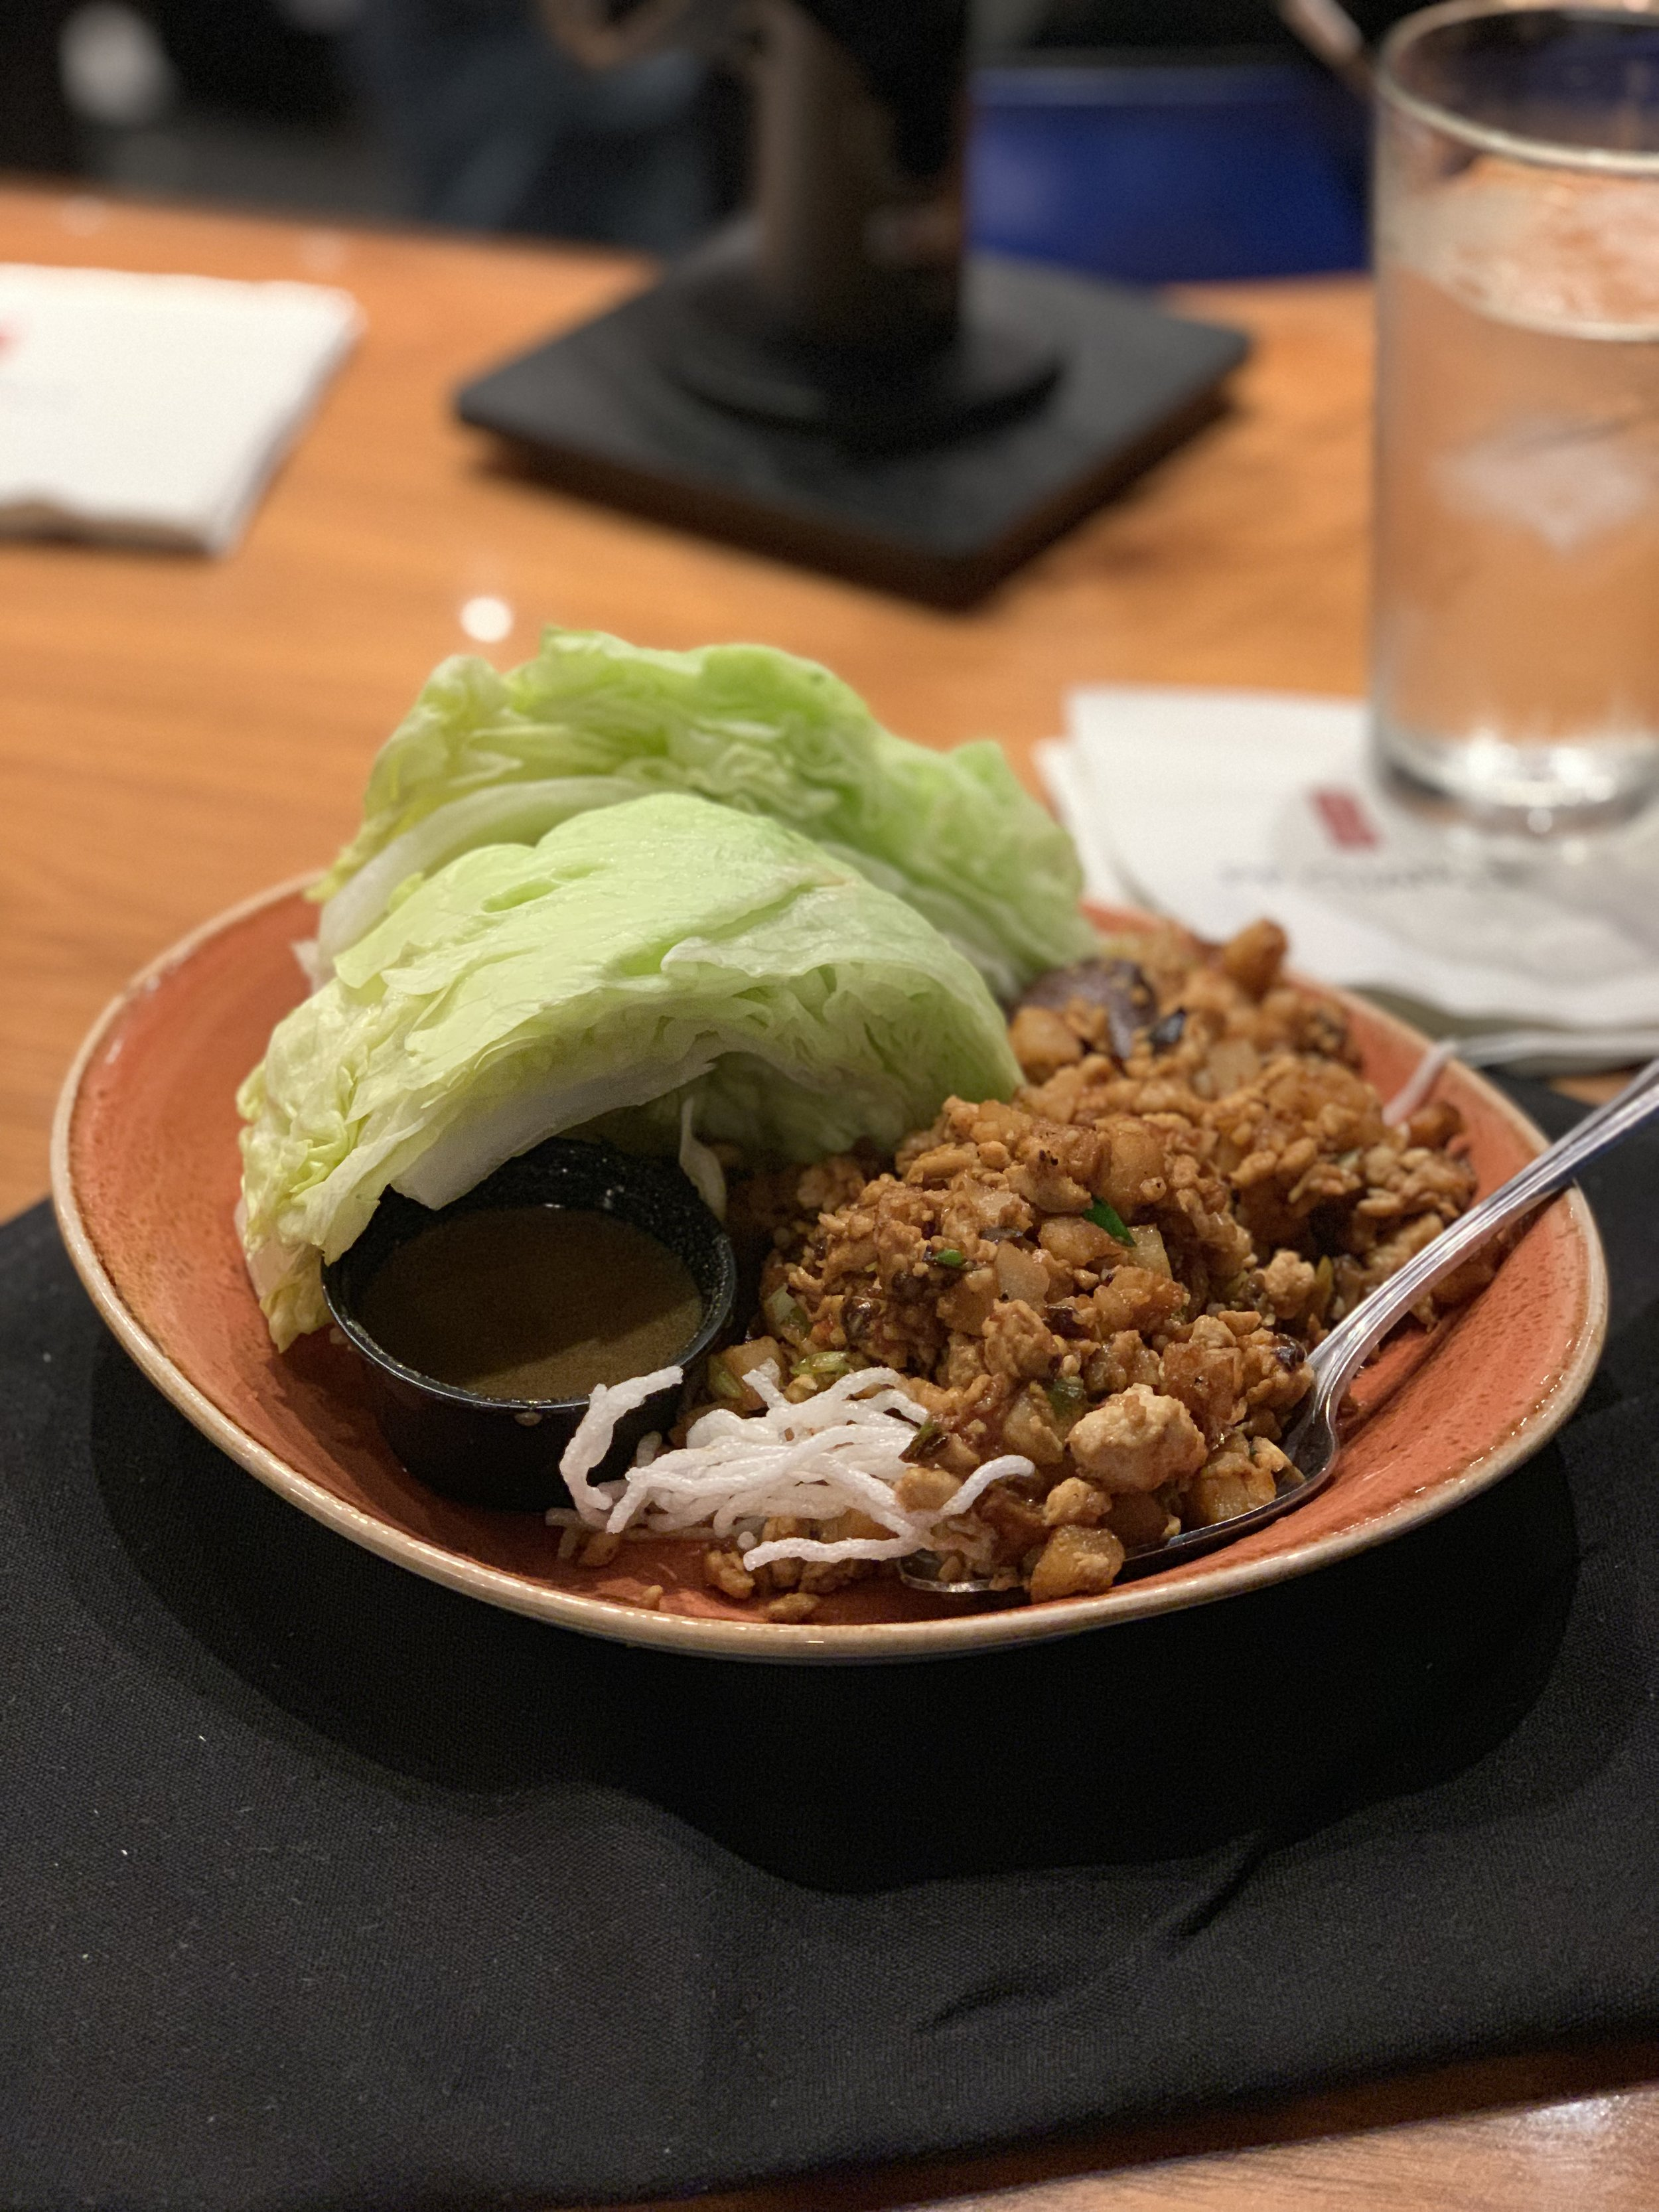 Can't go wrong with Lettuce Wraps!